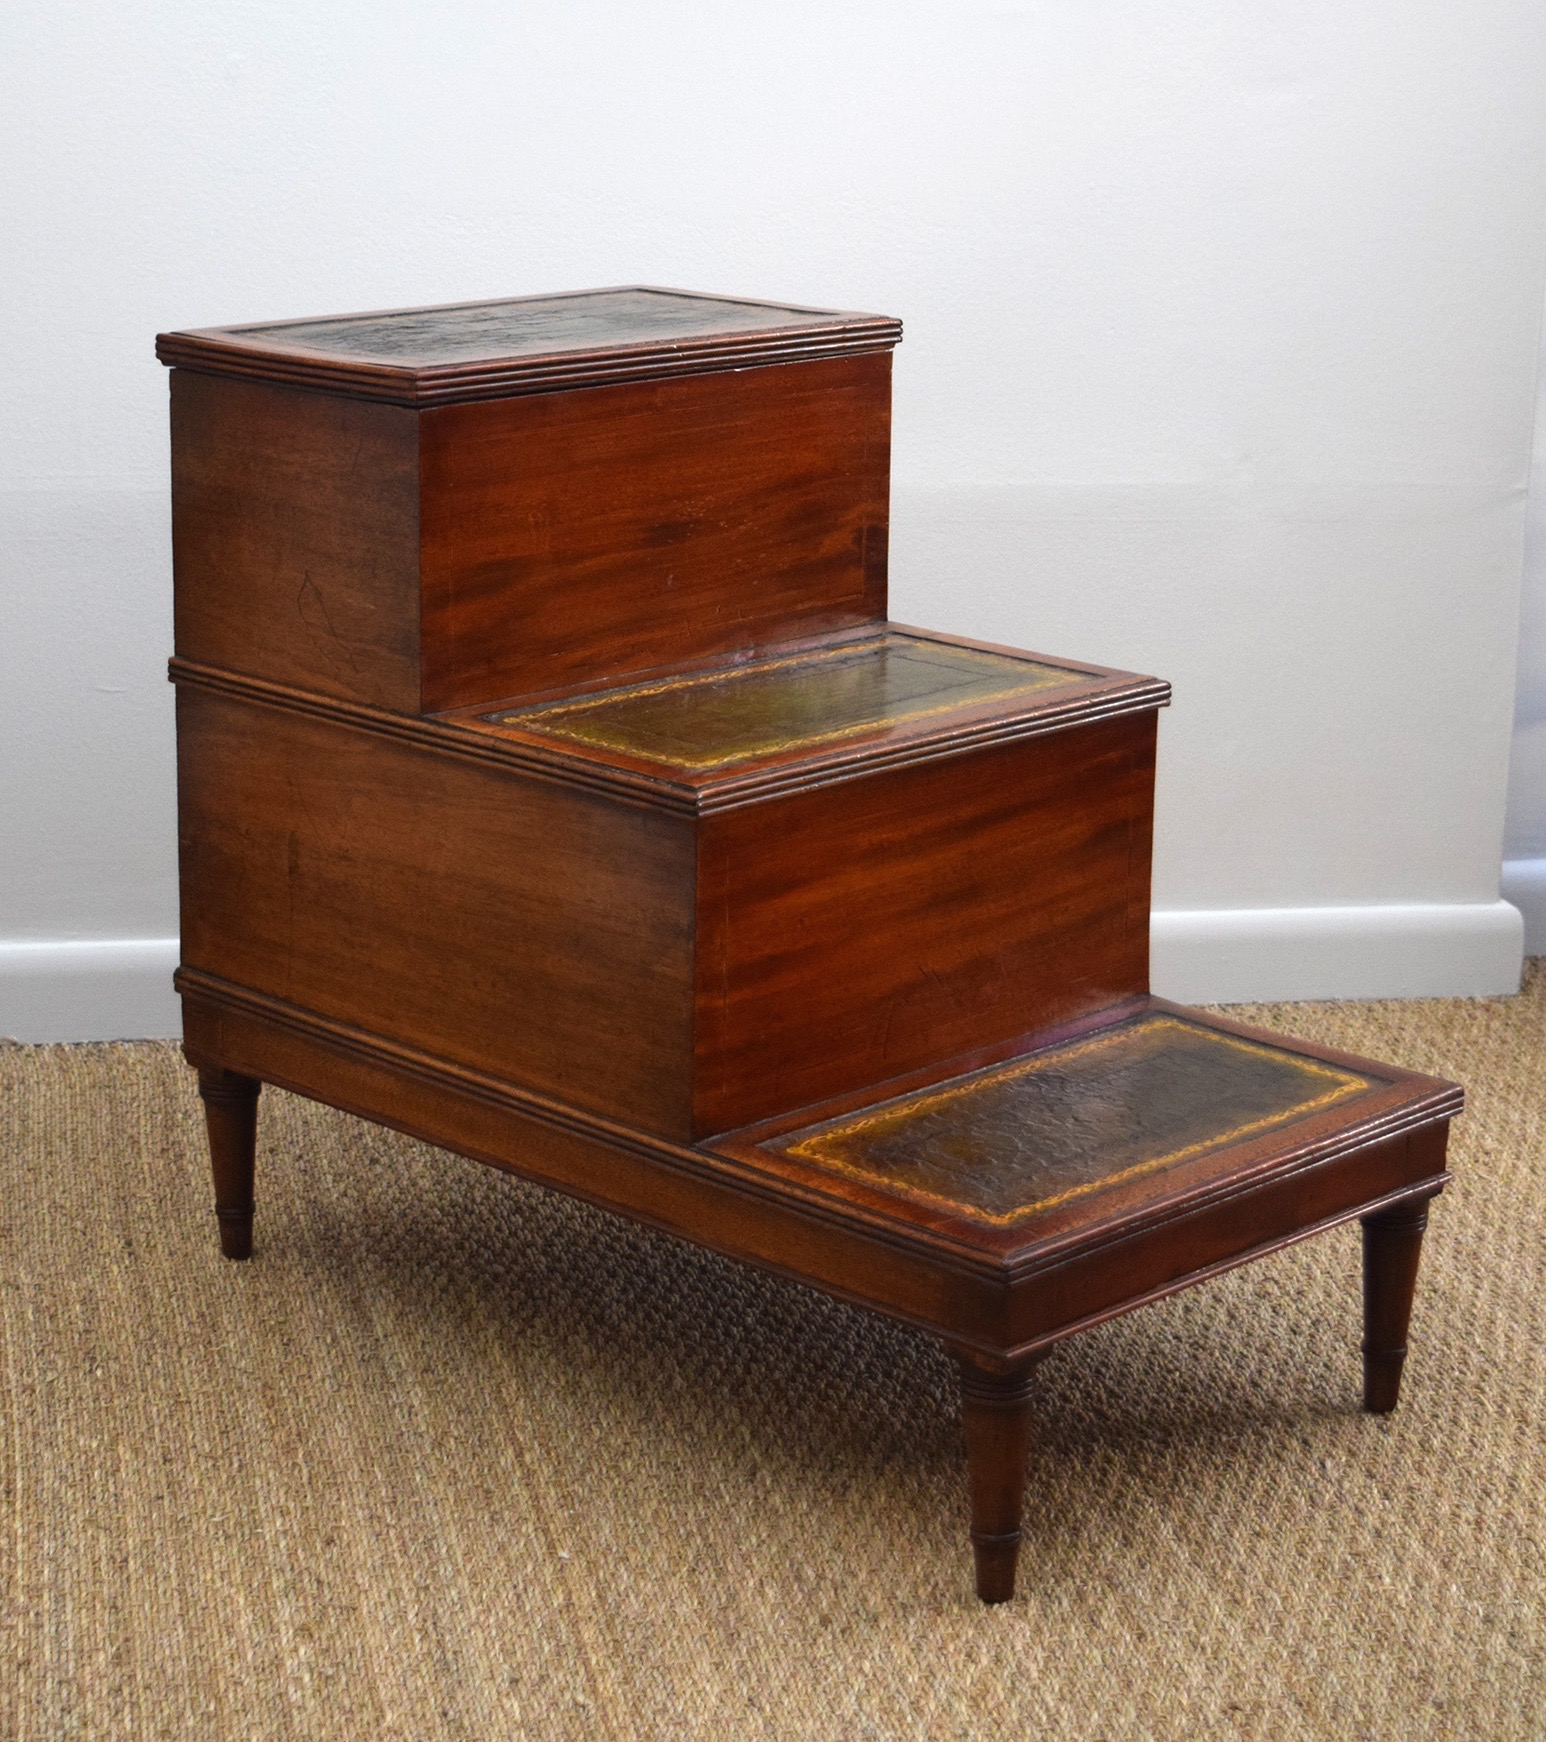 Self-Conscious Pair Of 1920s Cane Bergere And Oak Single Beds Antiques